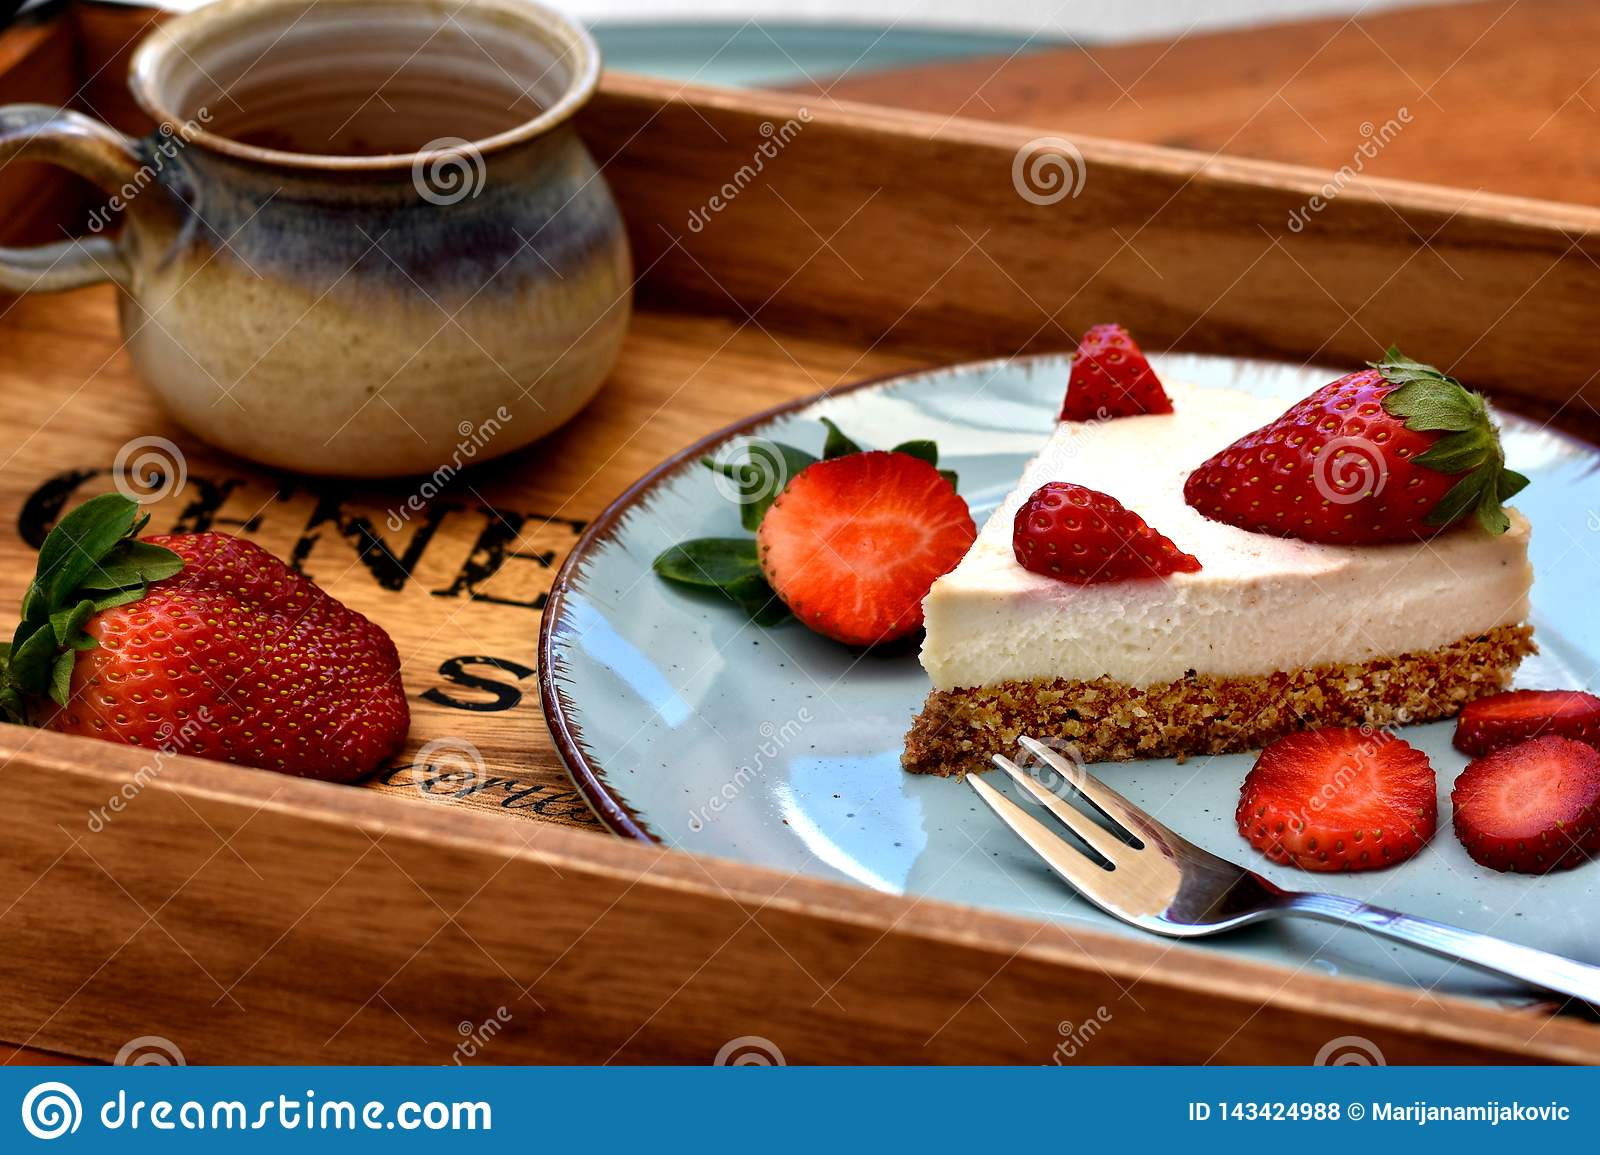 Slice of raw white strawberry cake on a blue plate with cup of coffee. Healthy breakfast concept.